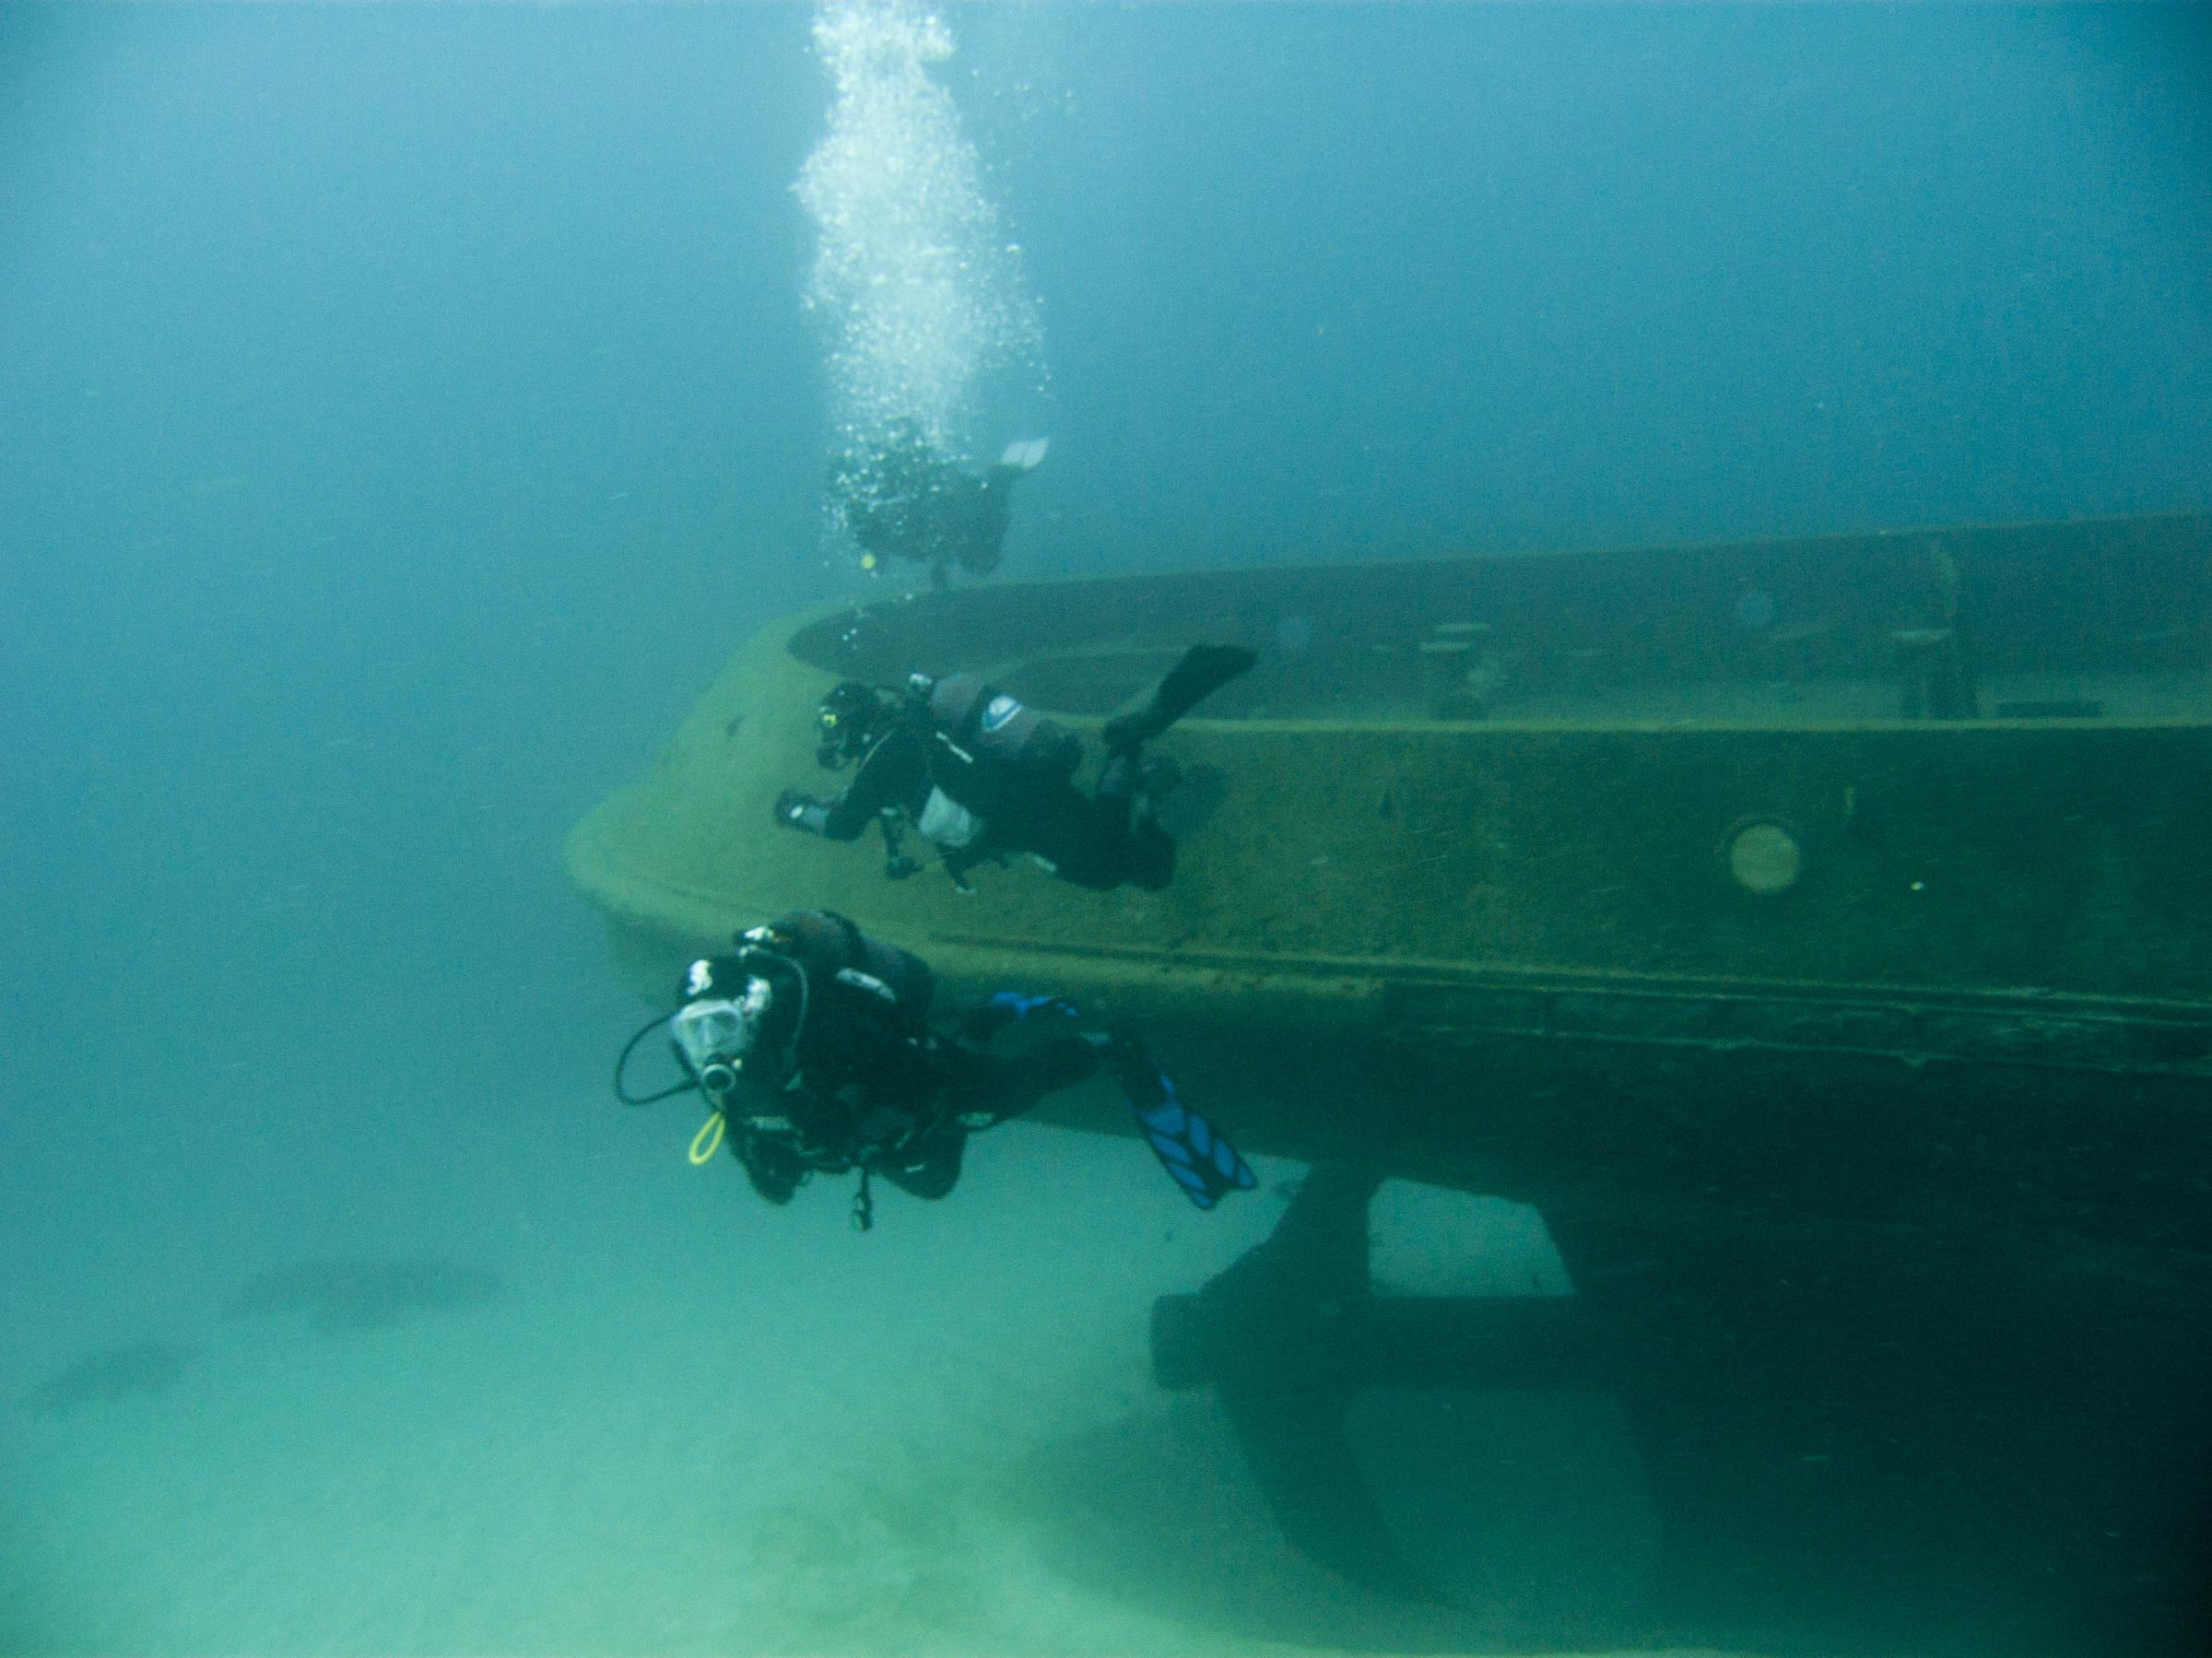 Divers at Tug 2 stern